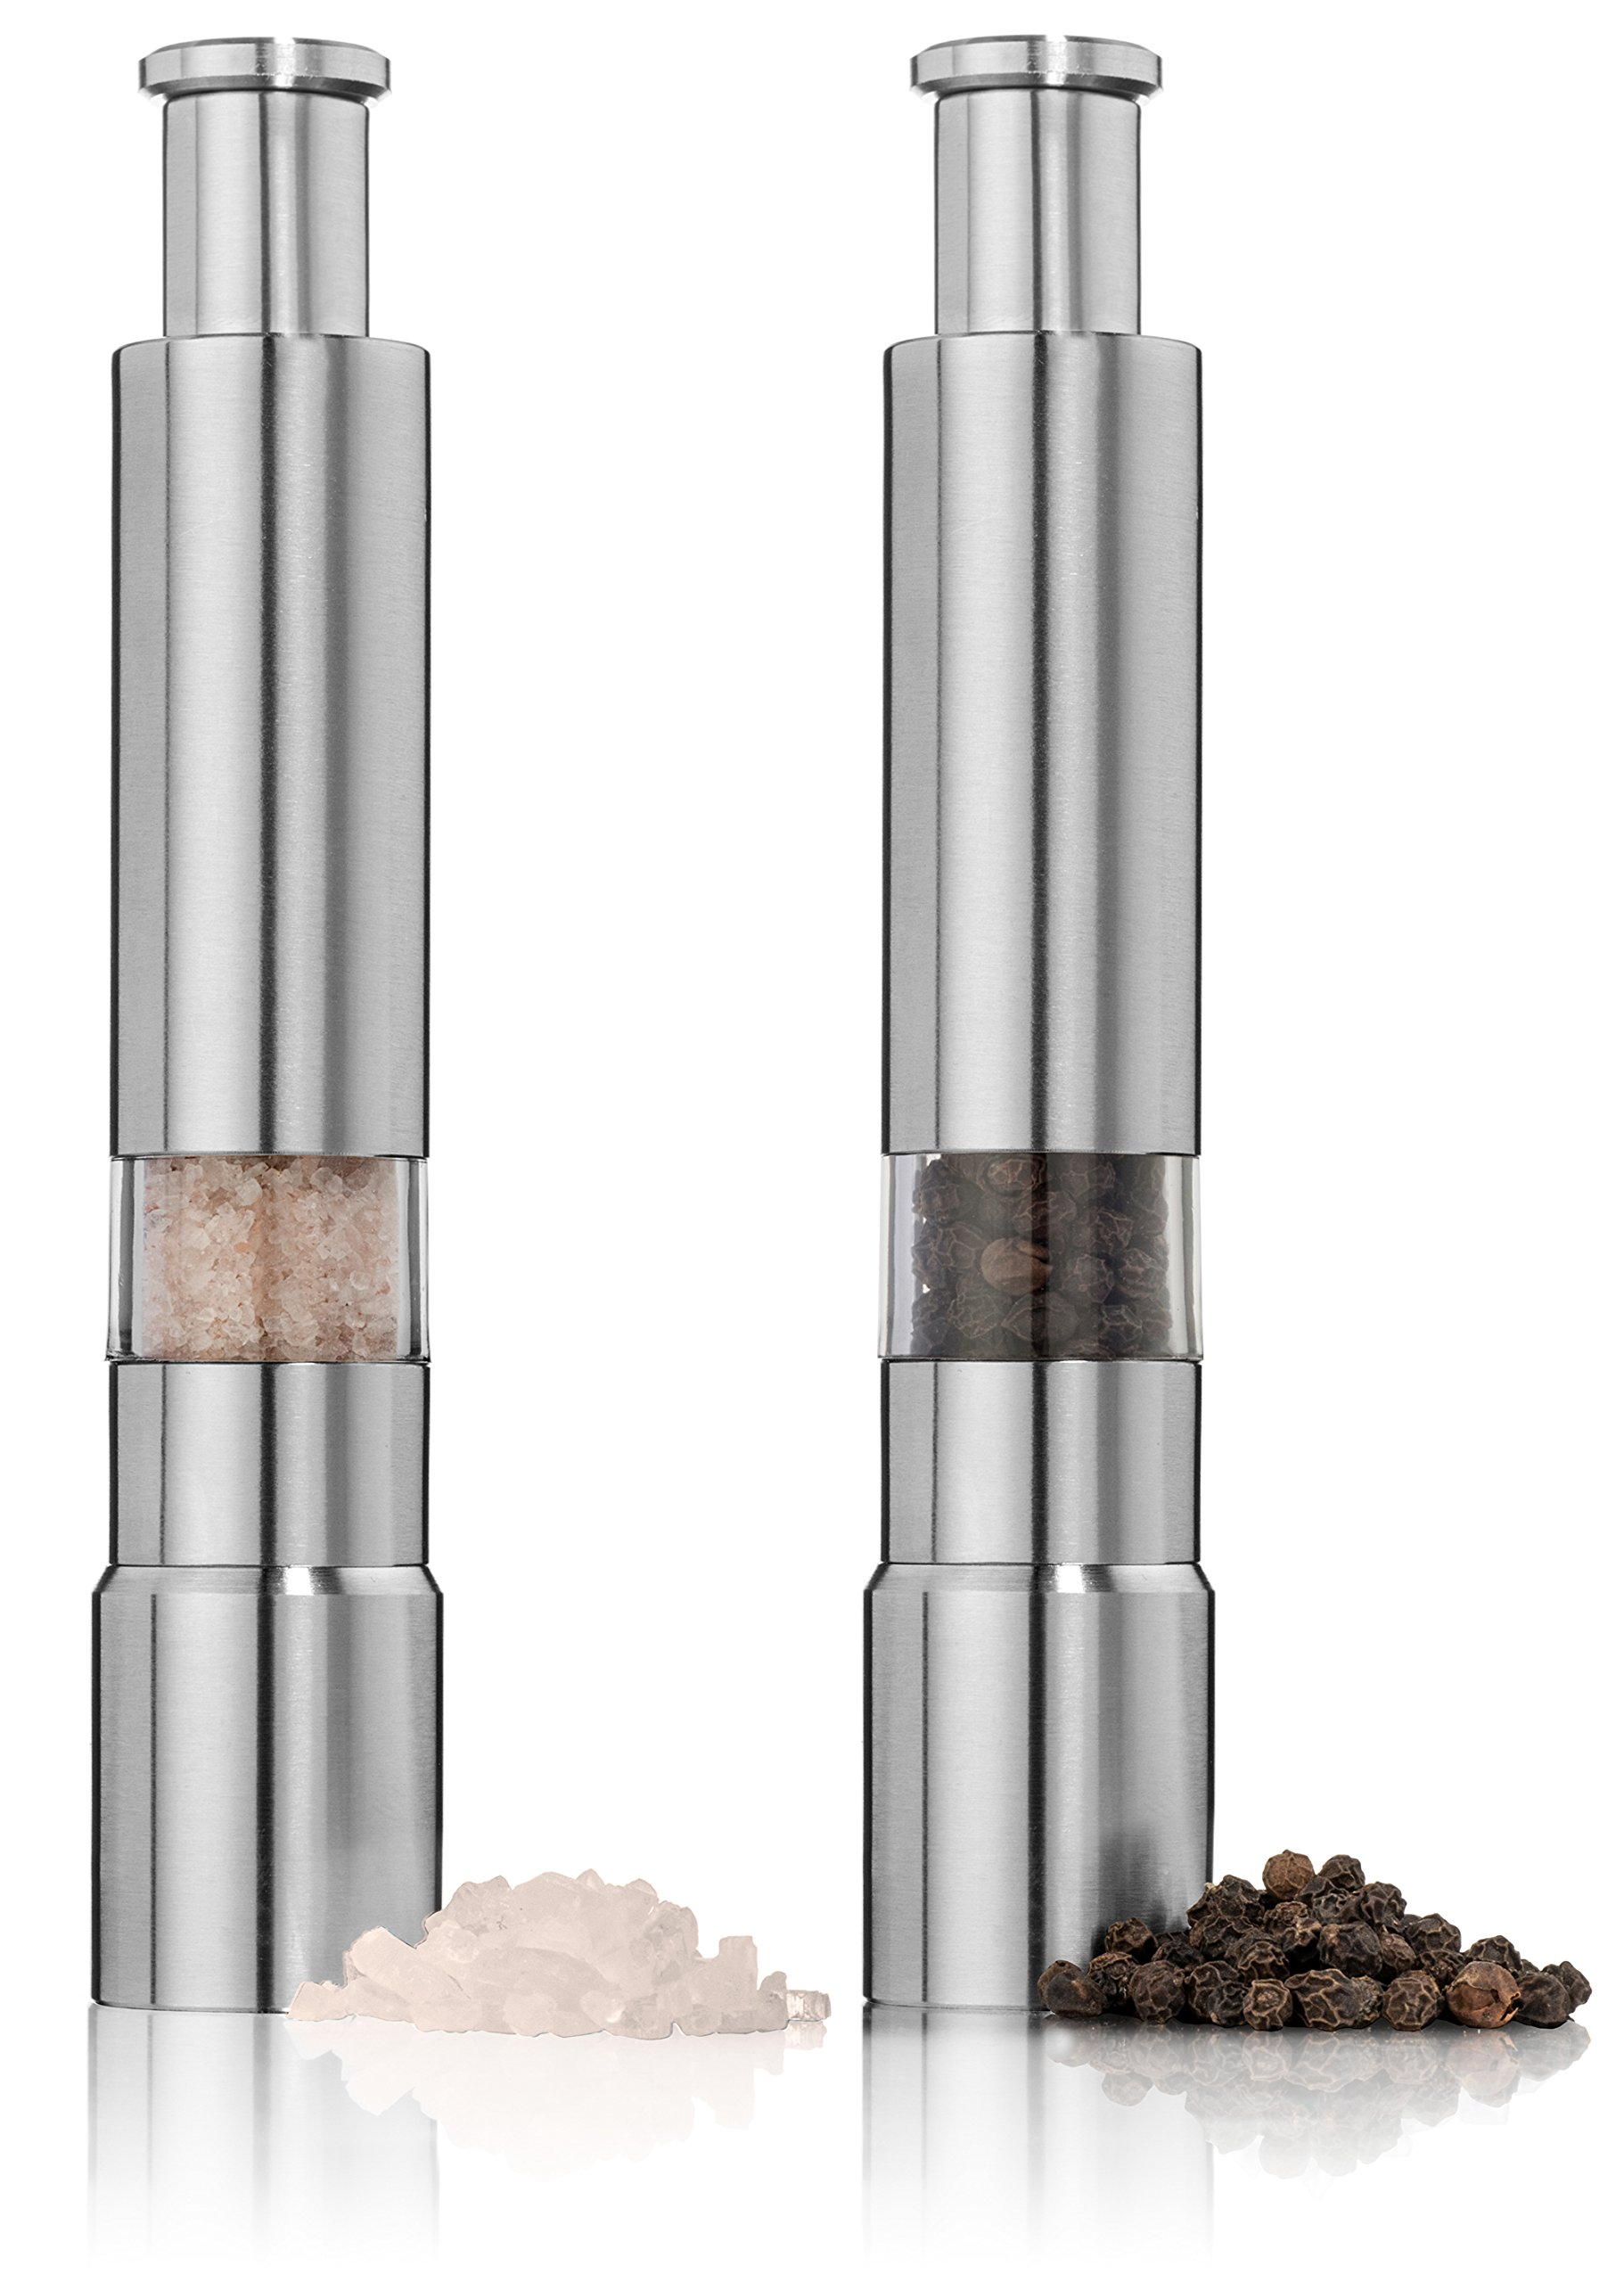 Salt and Pepper Grinder Set. Stainless Steel Salt and Pepper Mills Sleek Design Works Great With Peppercorns, Sea Salt, Himalayan Salt, Spices & Table Seasoning. Mini set of 2.